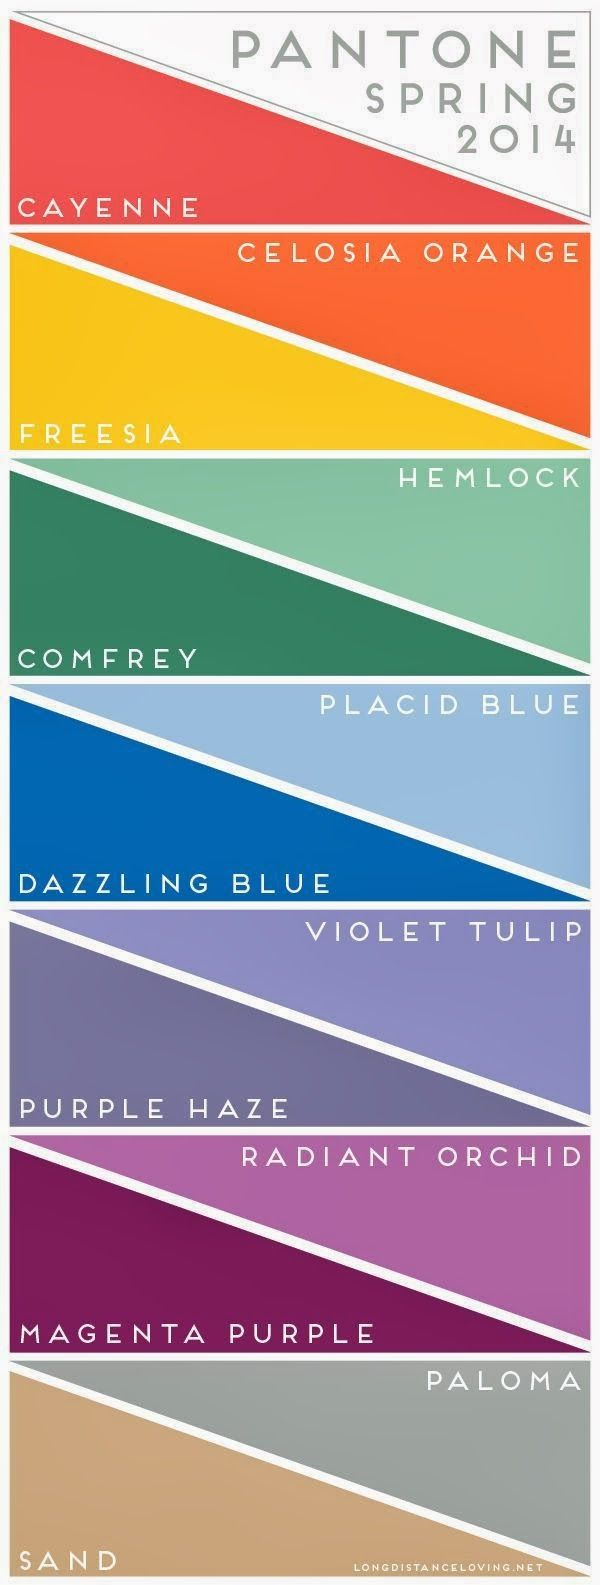 Pantone Spring 2014 Colors. Spring looks good this year!